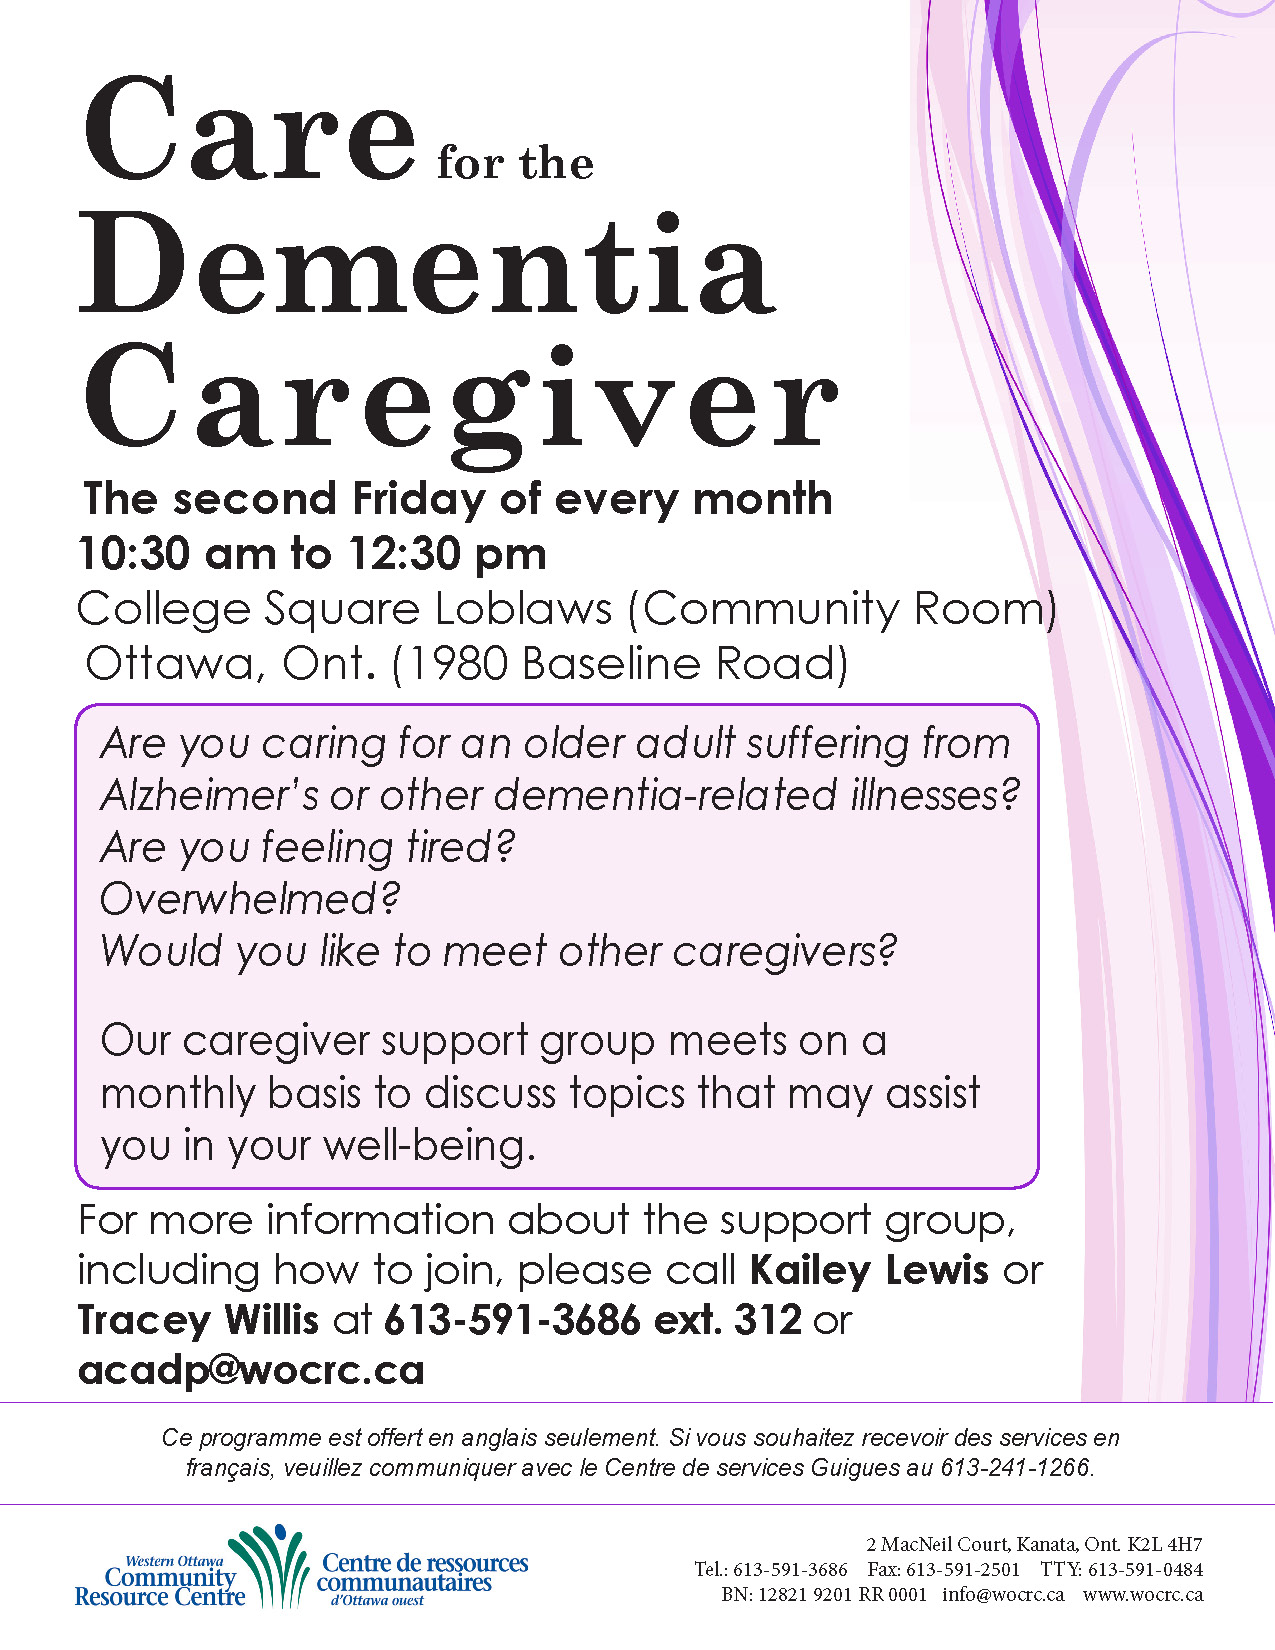 Care for the Dementia Caregiver Poster 2018 update